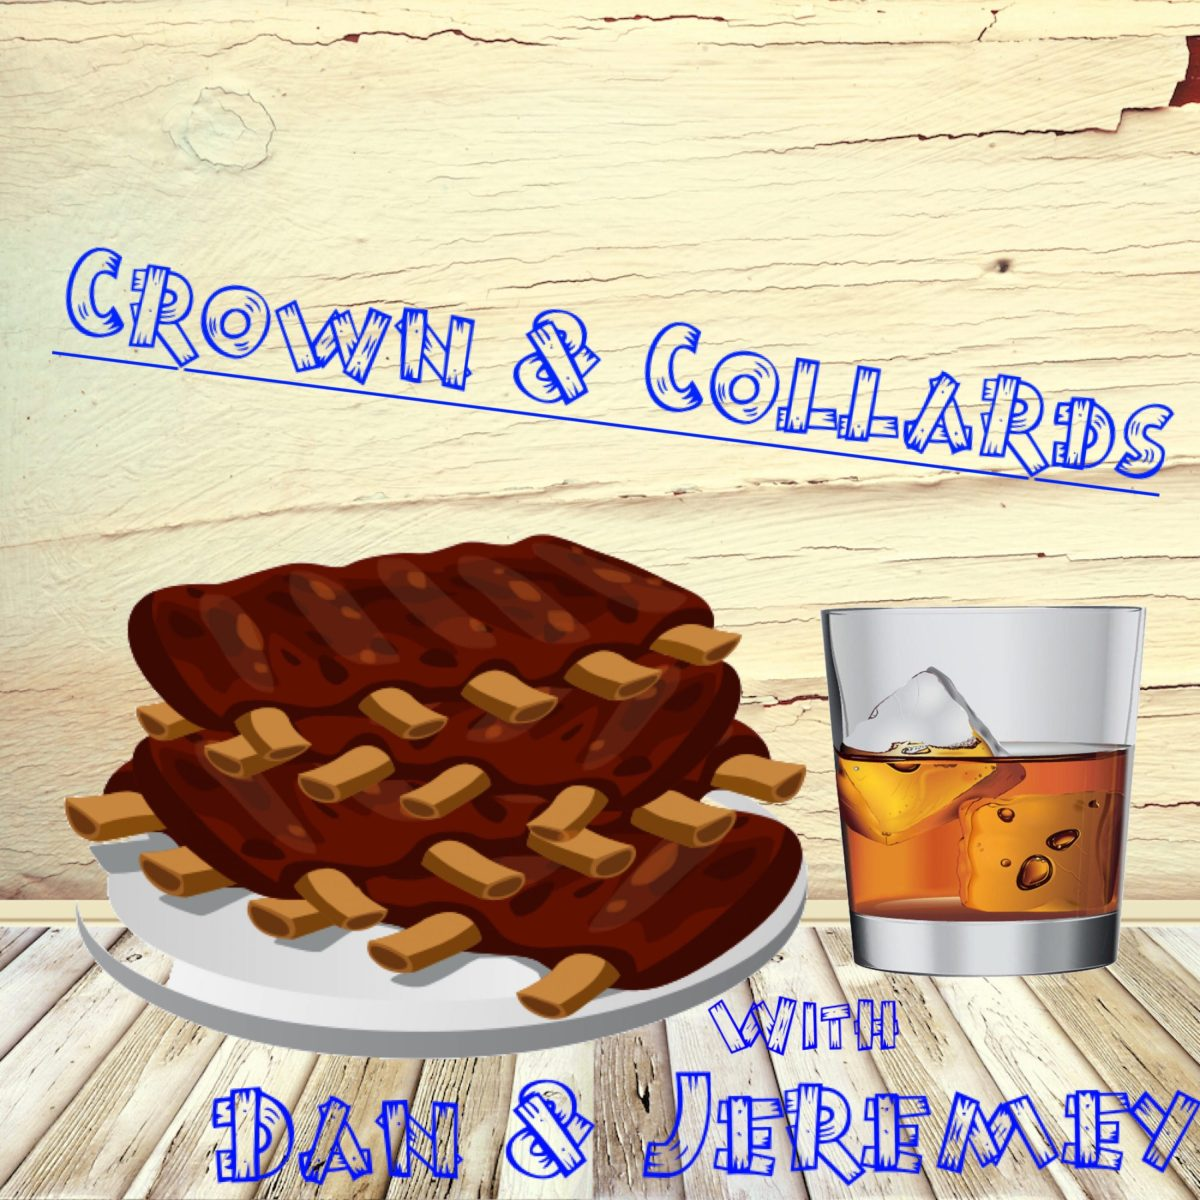 Crown & Collards Episode 146: TV Dinners for The Ghetto (featuring @iamhusk)